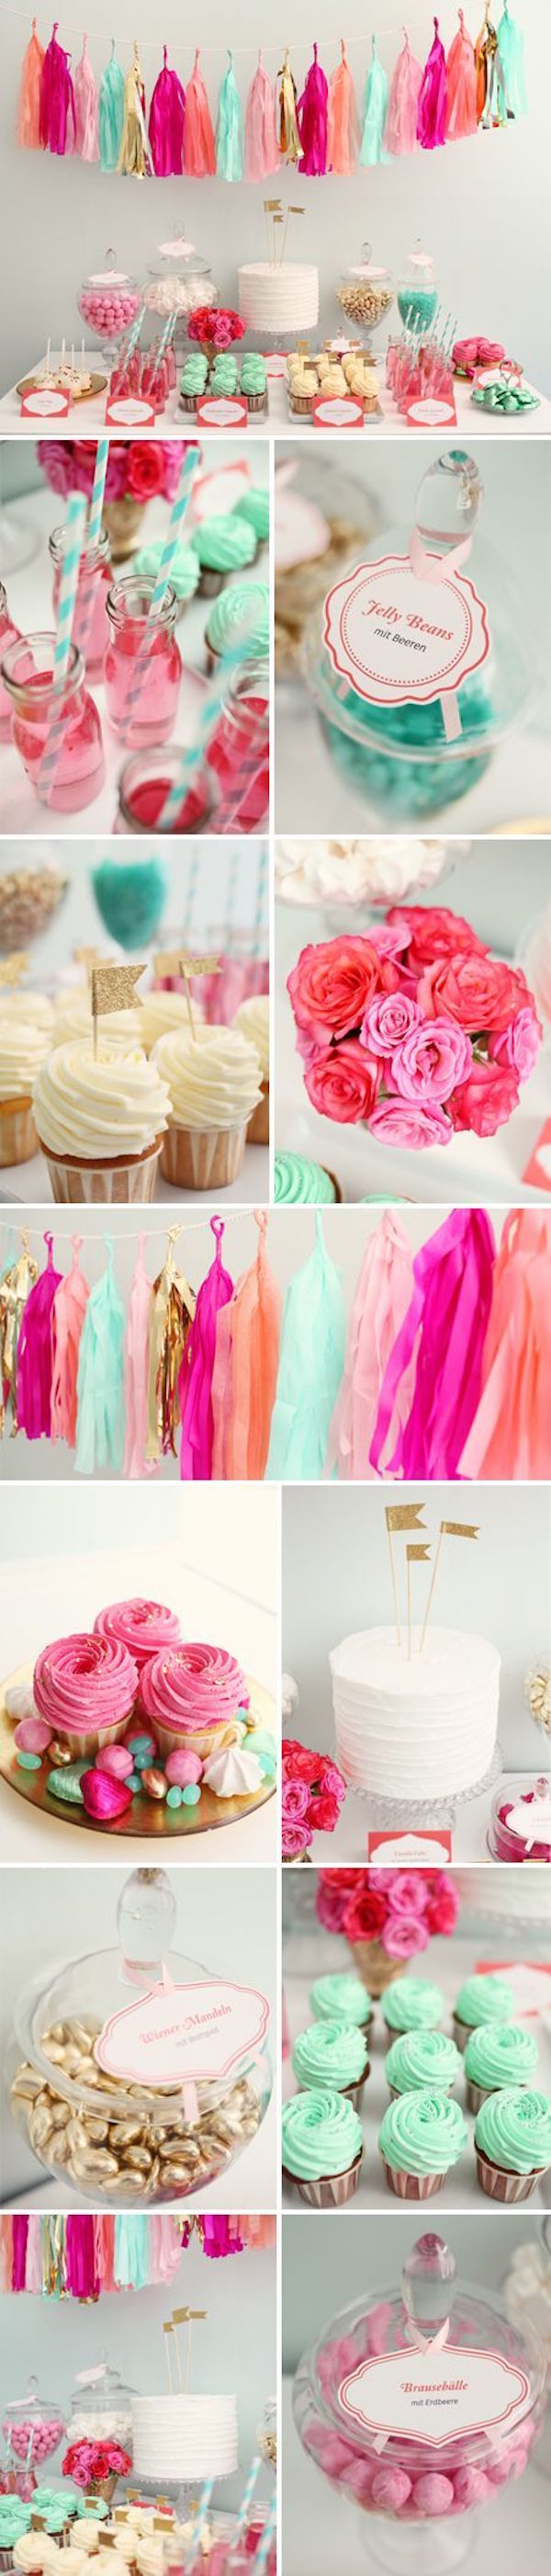 Chic Party Inspiration4